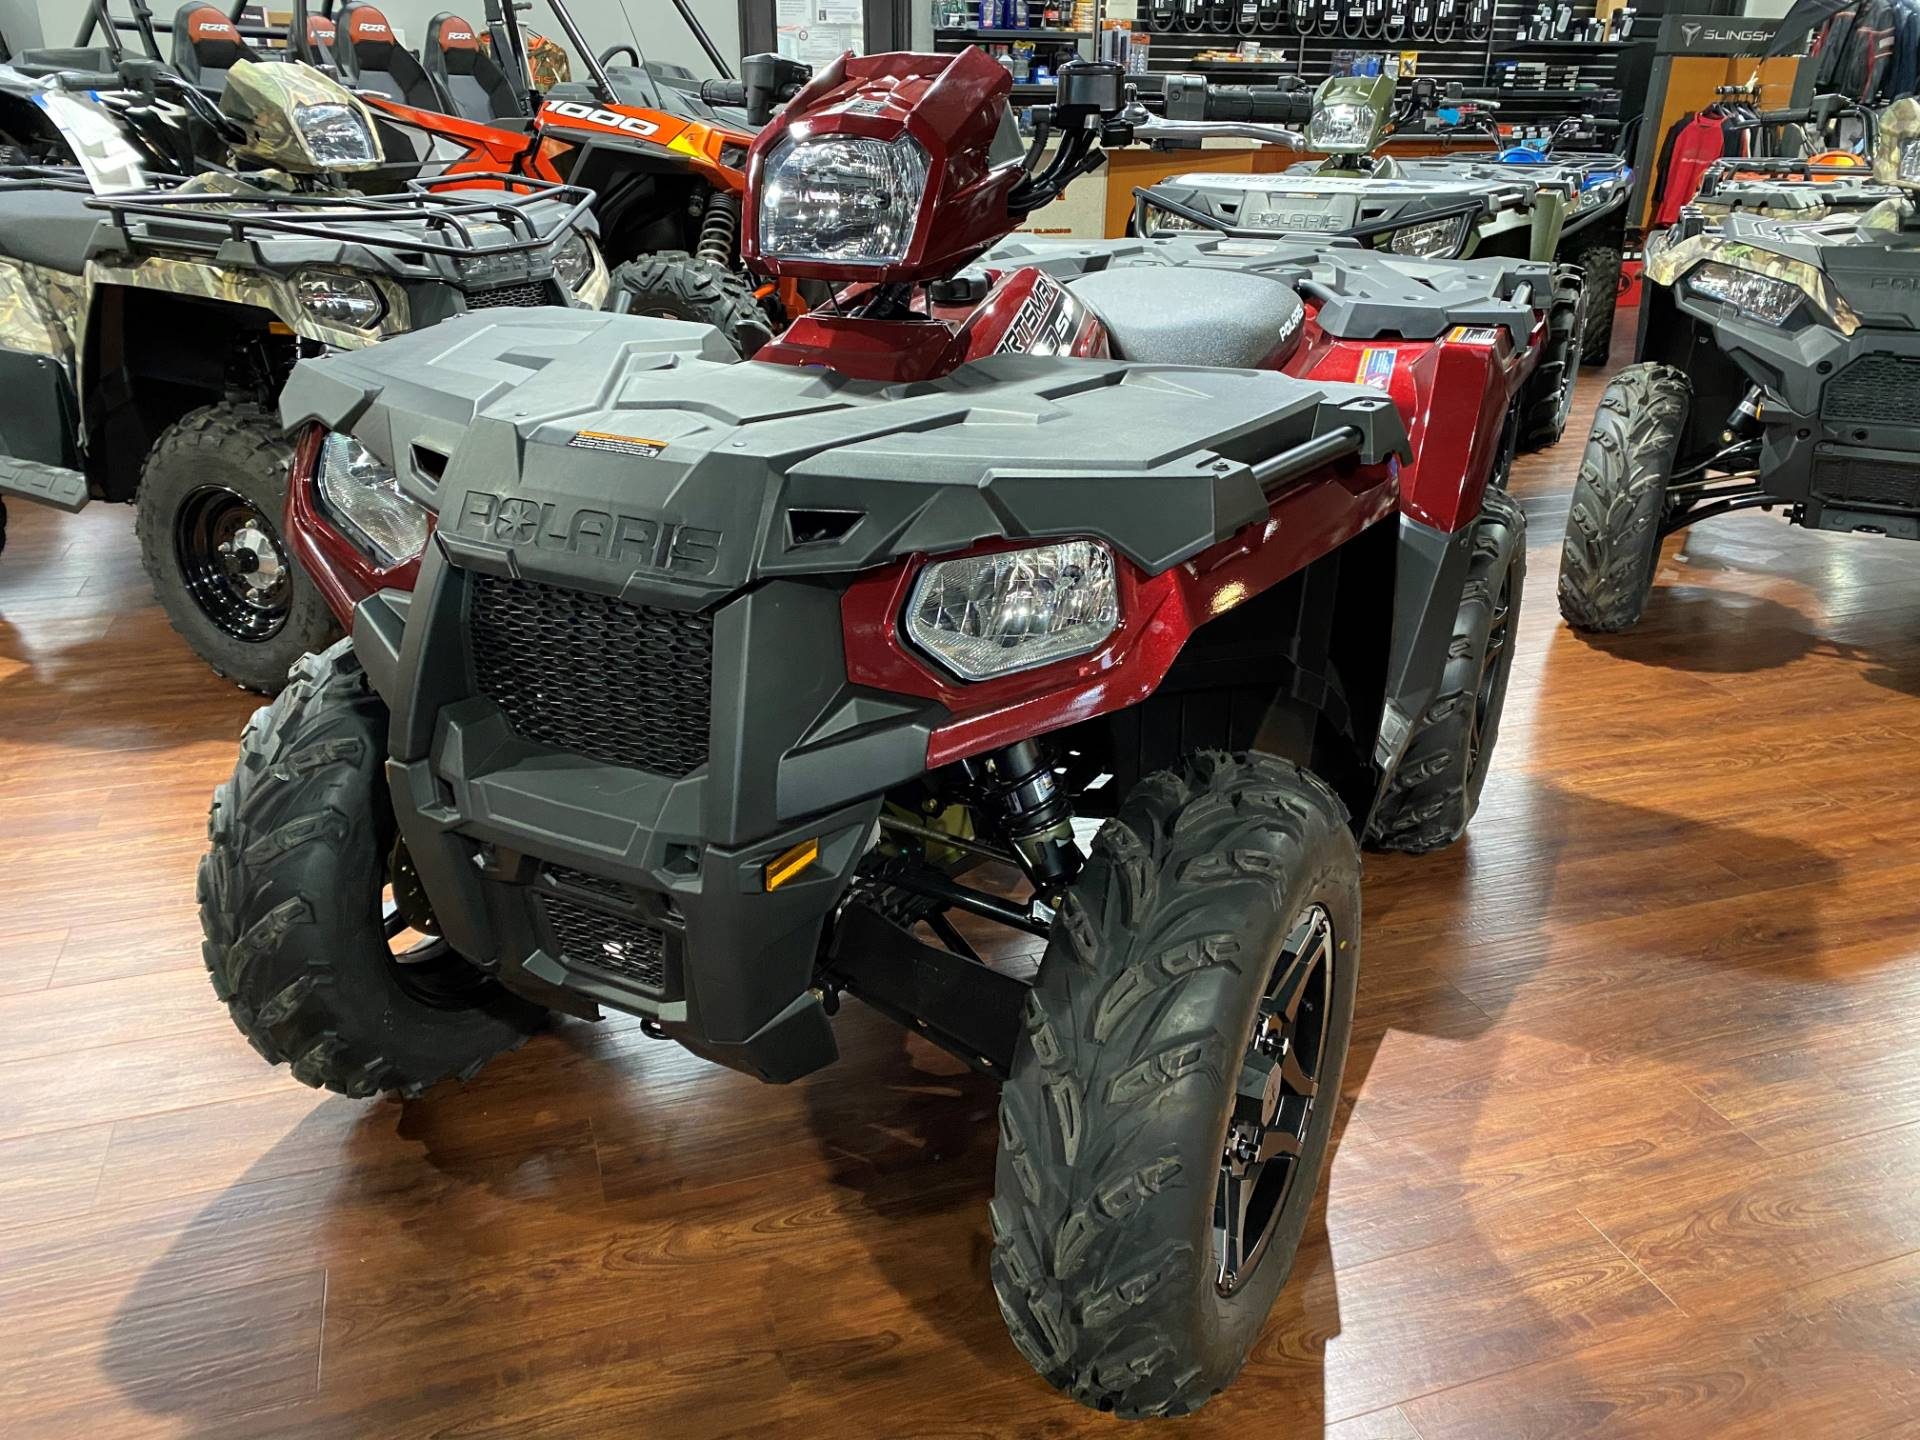 2019 Polaris Sportsman 570 SP - Photo 6